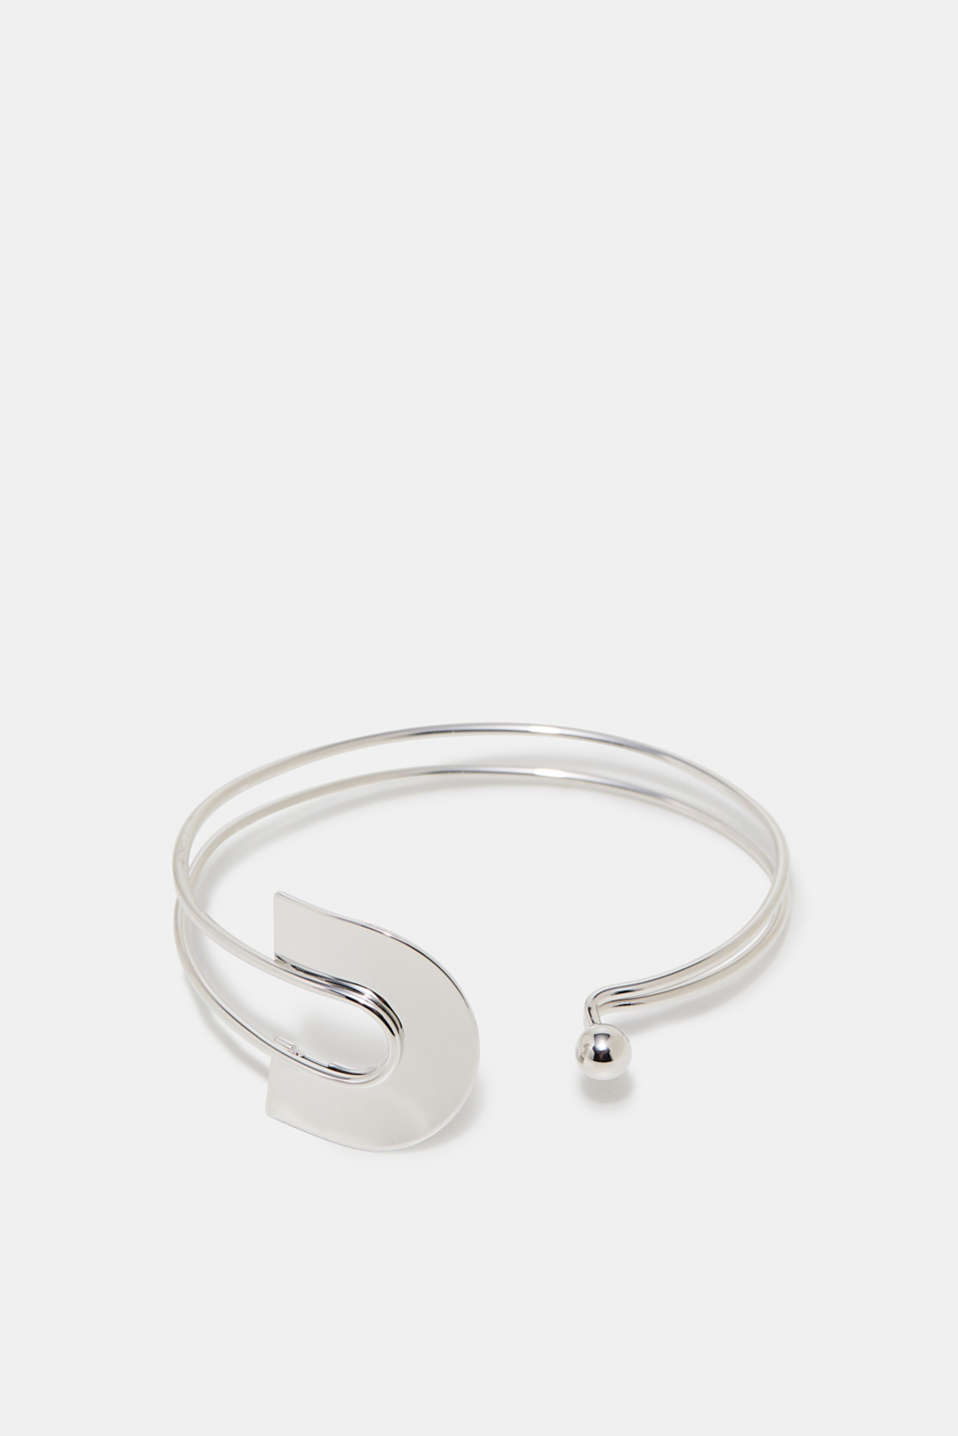 Esprit - Open bangle made of polished metal